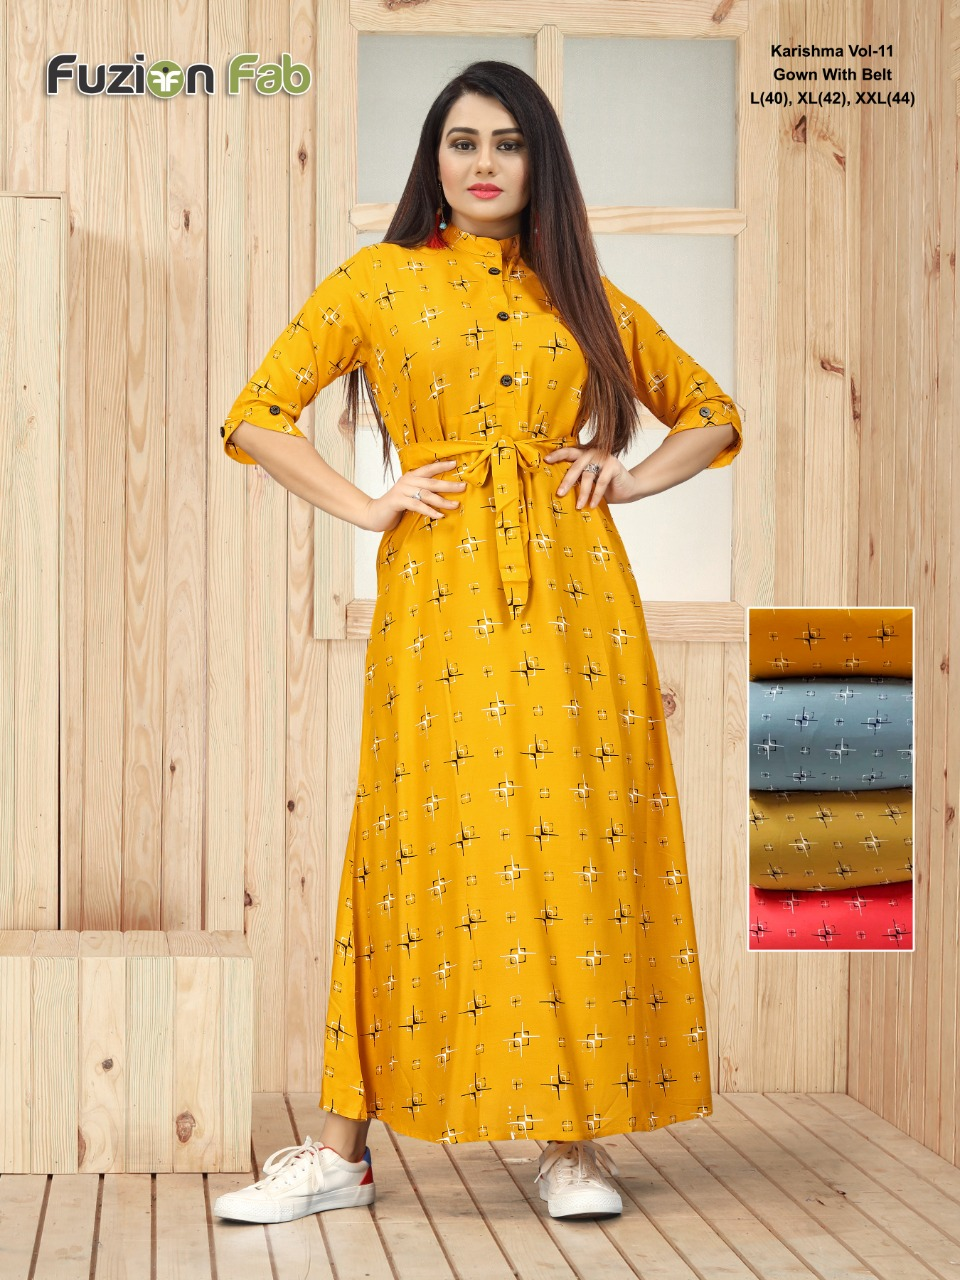 Fuzion Fab Karishma Vol 11 Designer Heavy Rayon Gowns In Lowest Price Wholesale